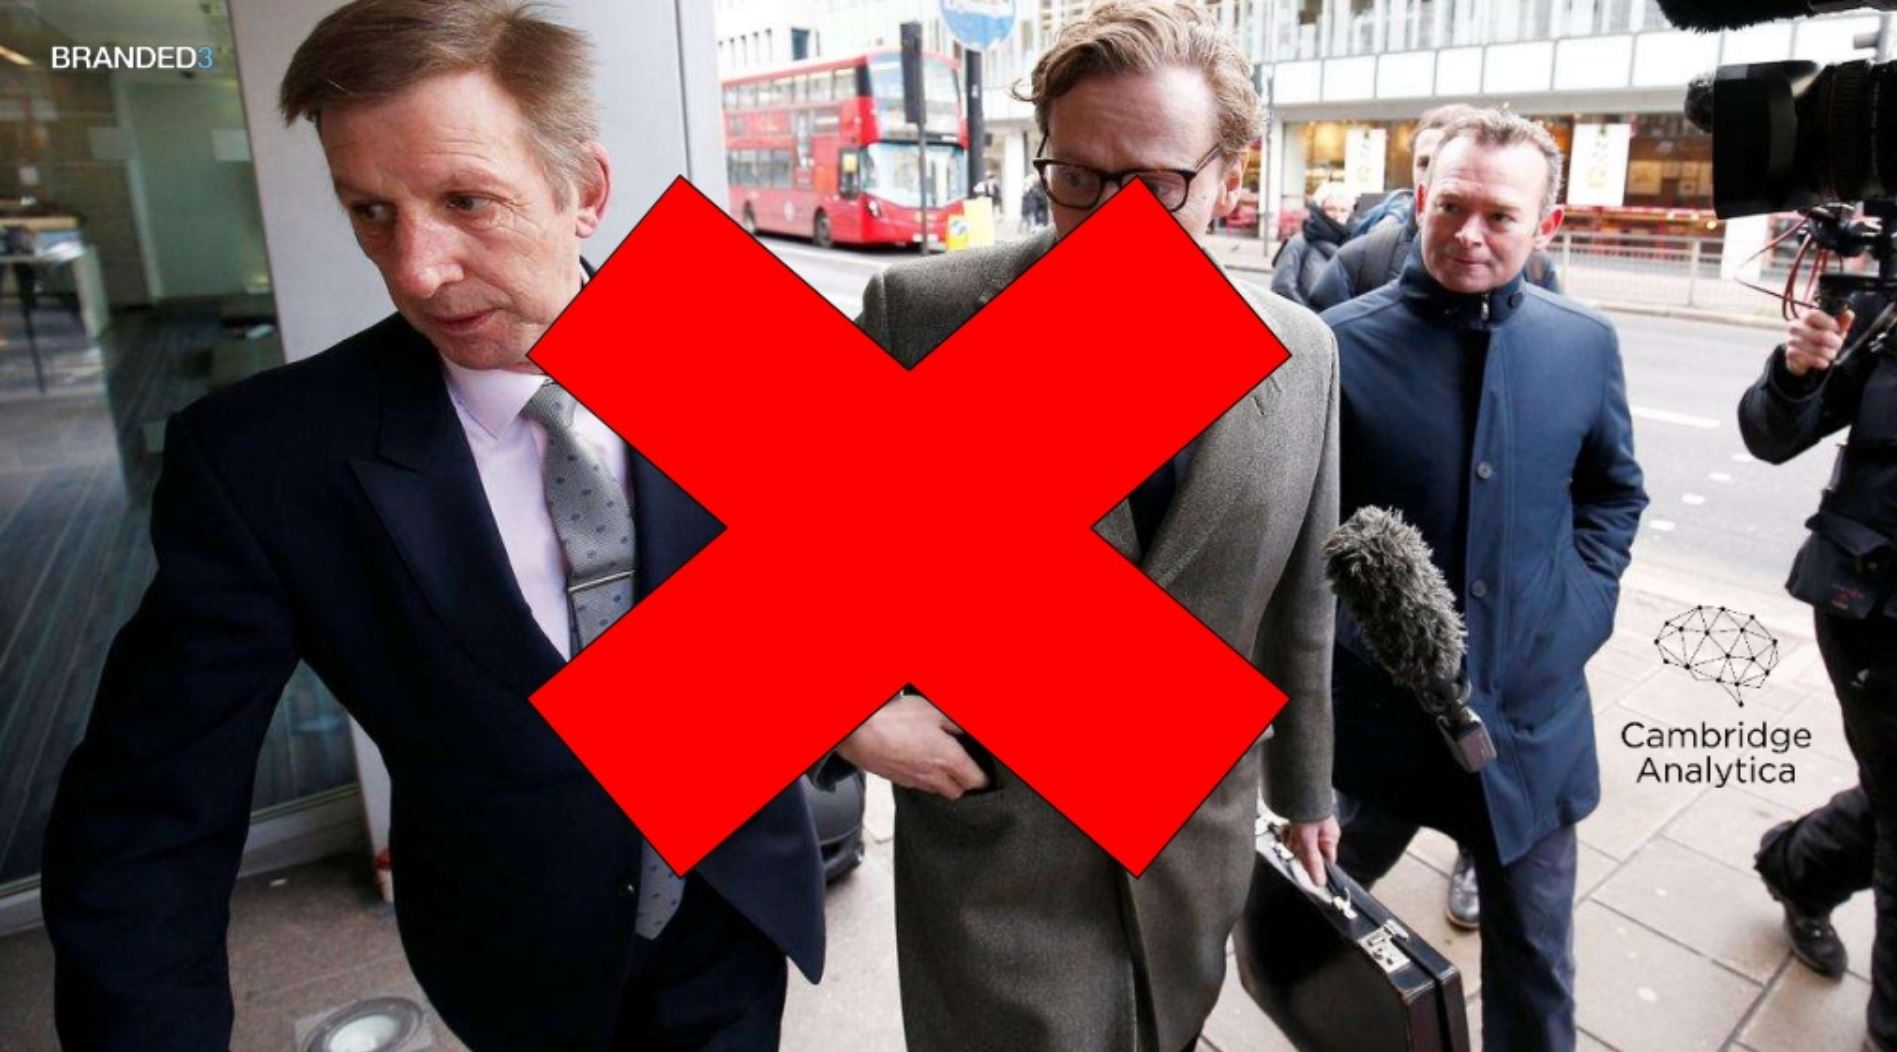 Photo of the Cambridge Analytica guys with a big red cross over it